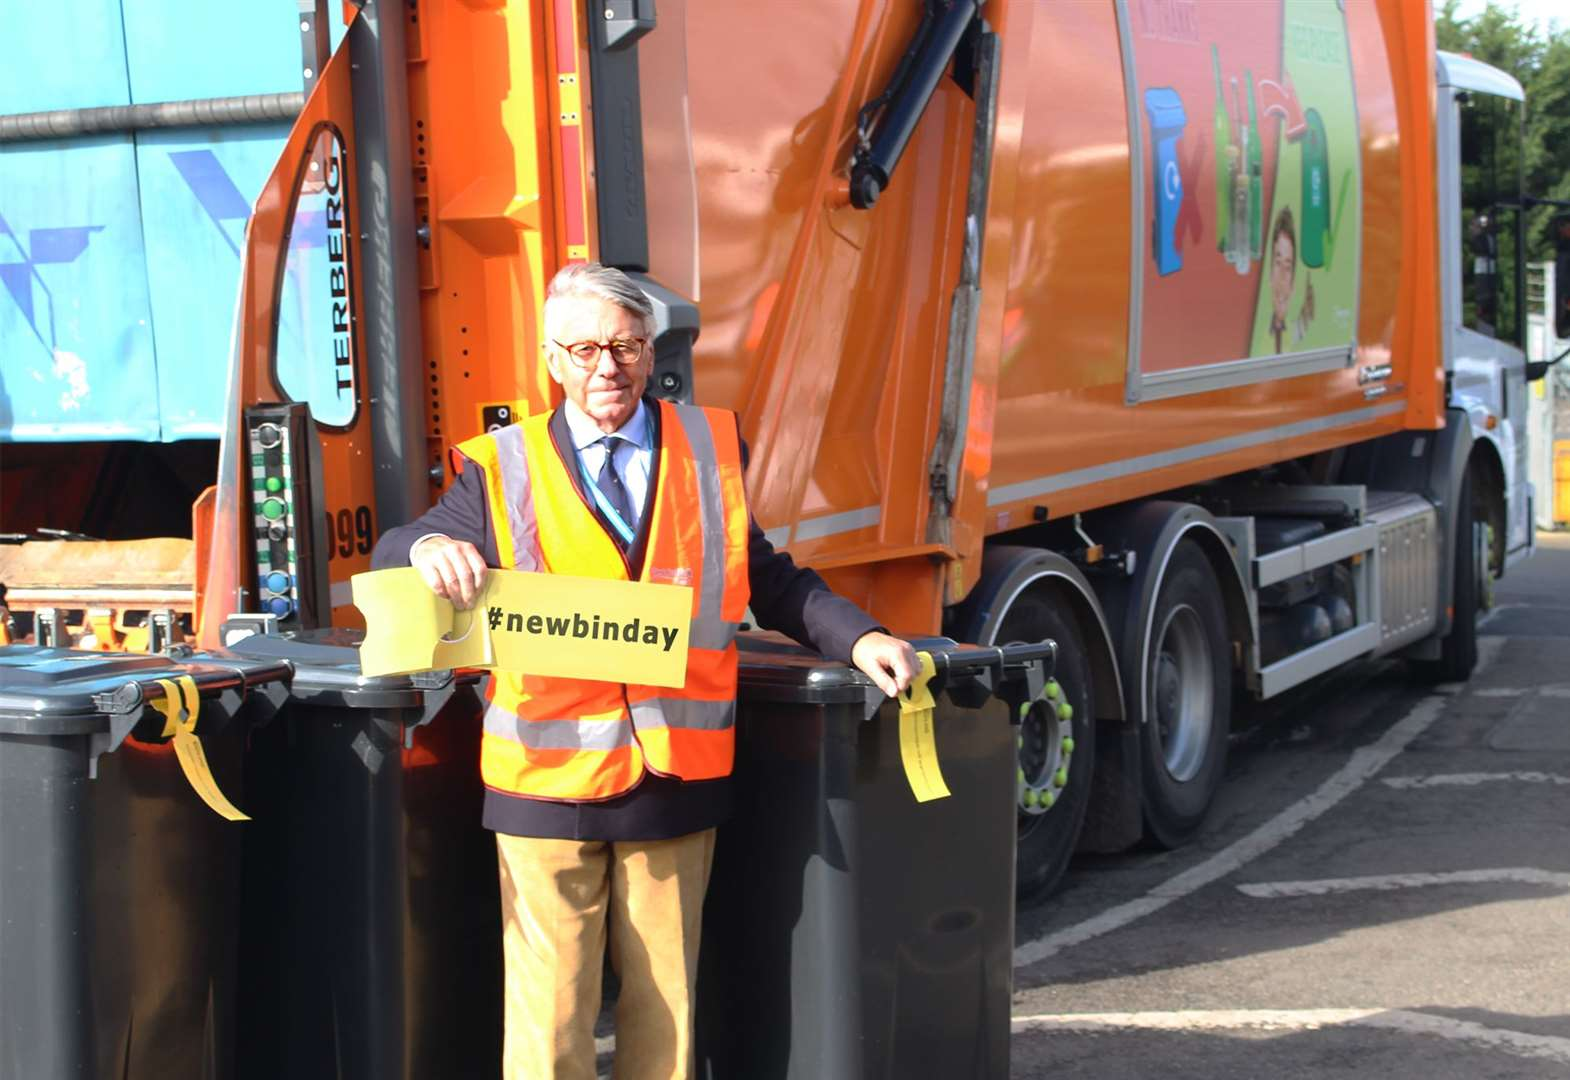 West Suffolk Council announces changes to bin collection days and times